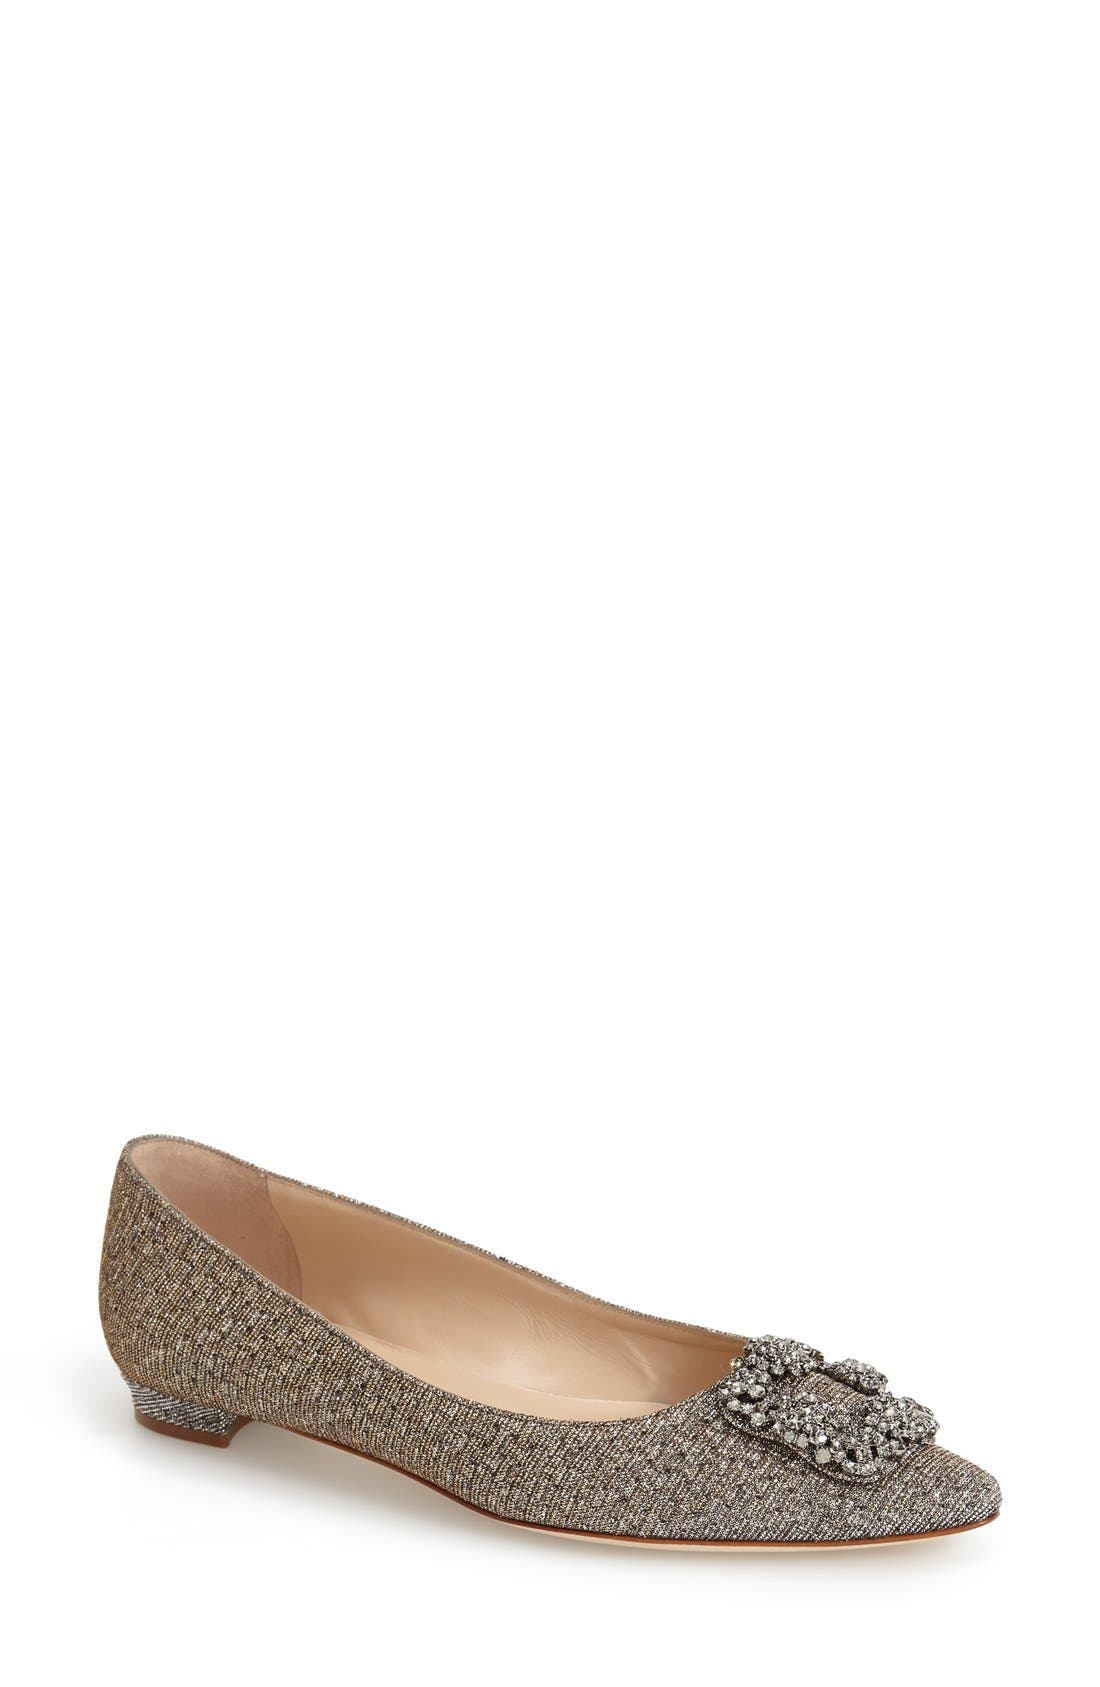 MANOLO BLAHNIK Hangisi Metallic Fabric Buckle Flat in Bronze Fabric